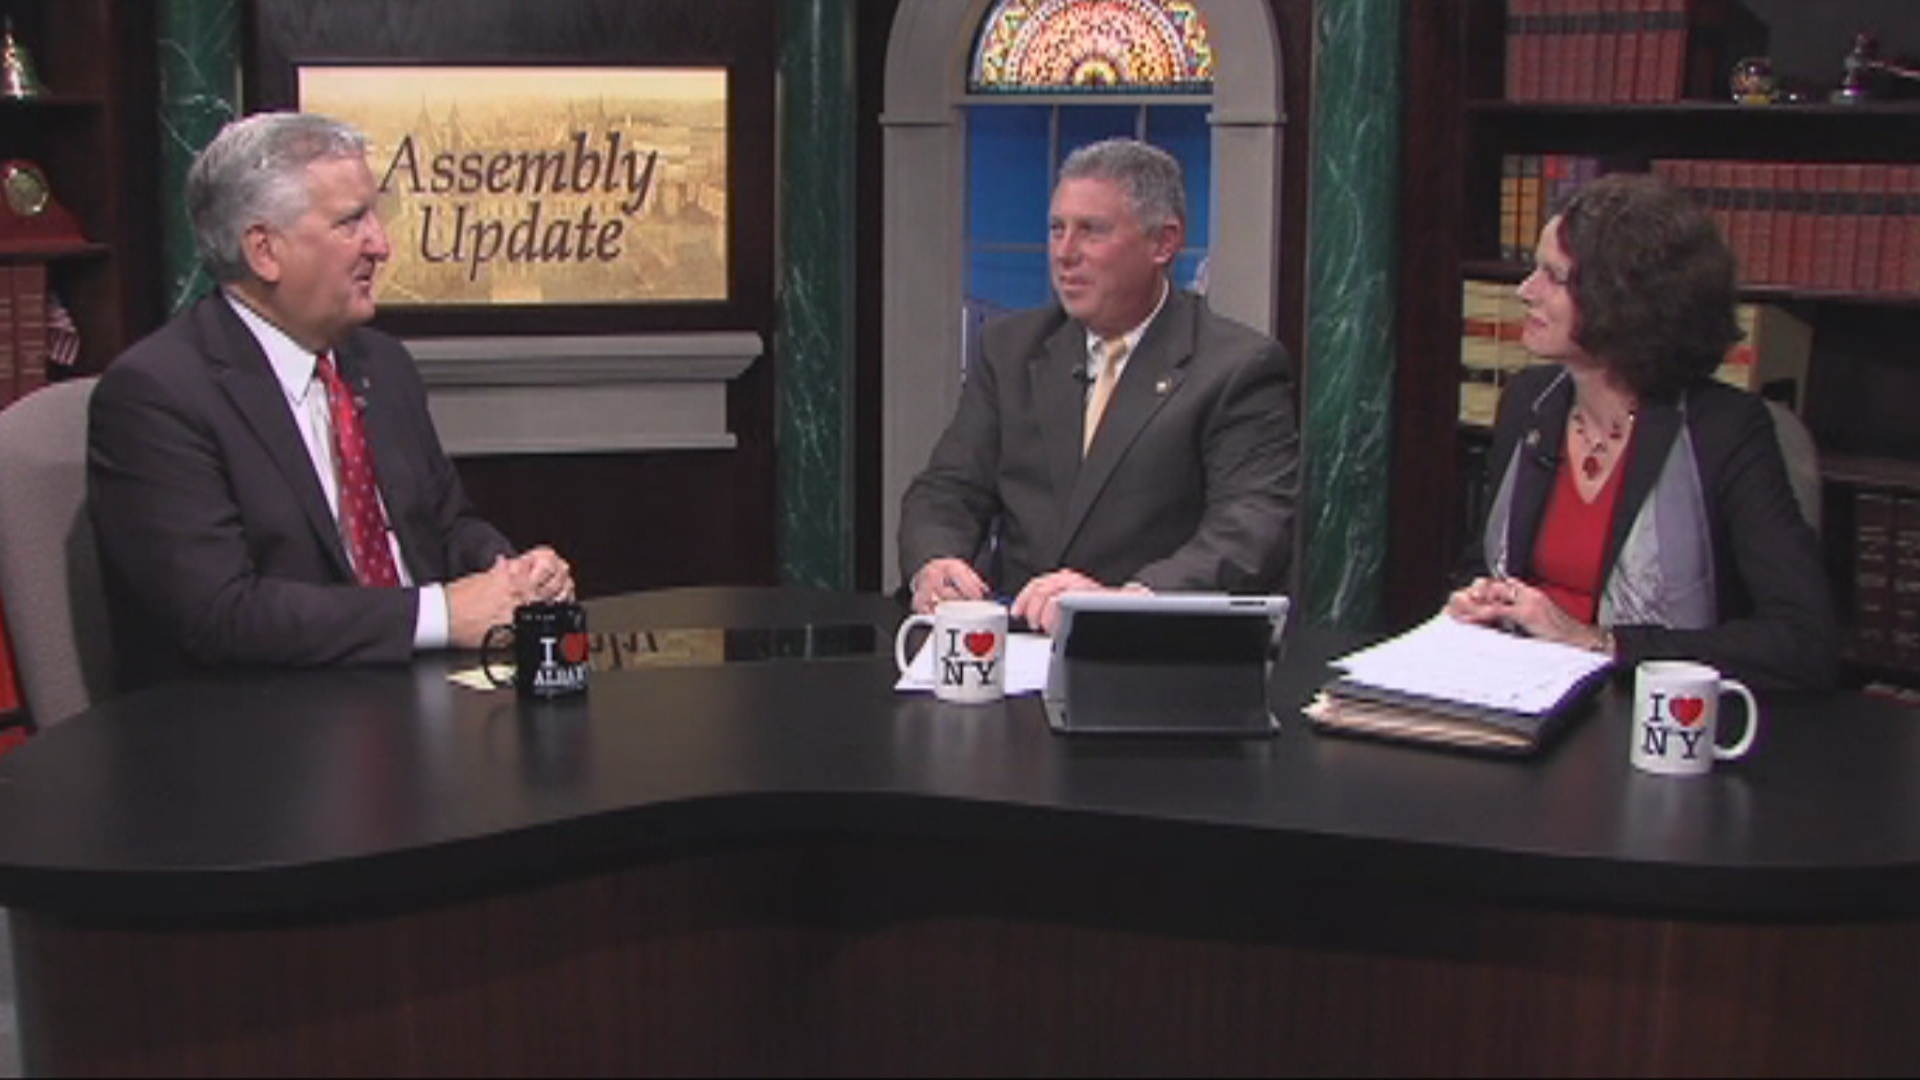 Interview with Mayor Jennings on Education